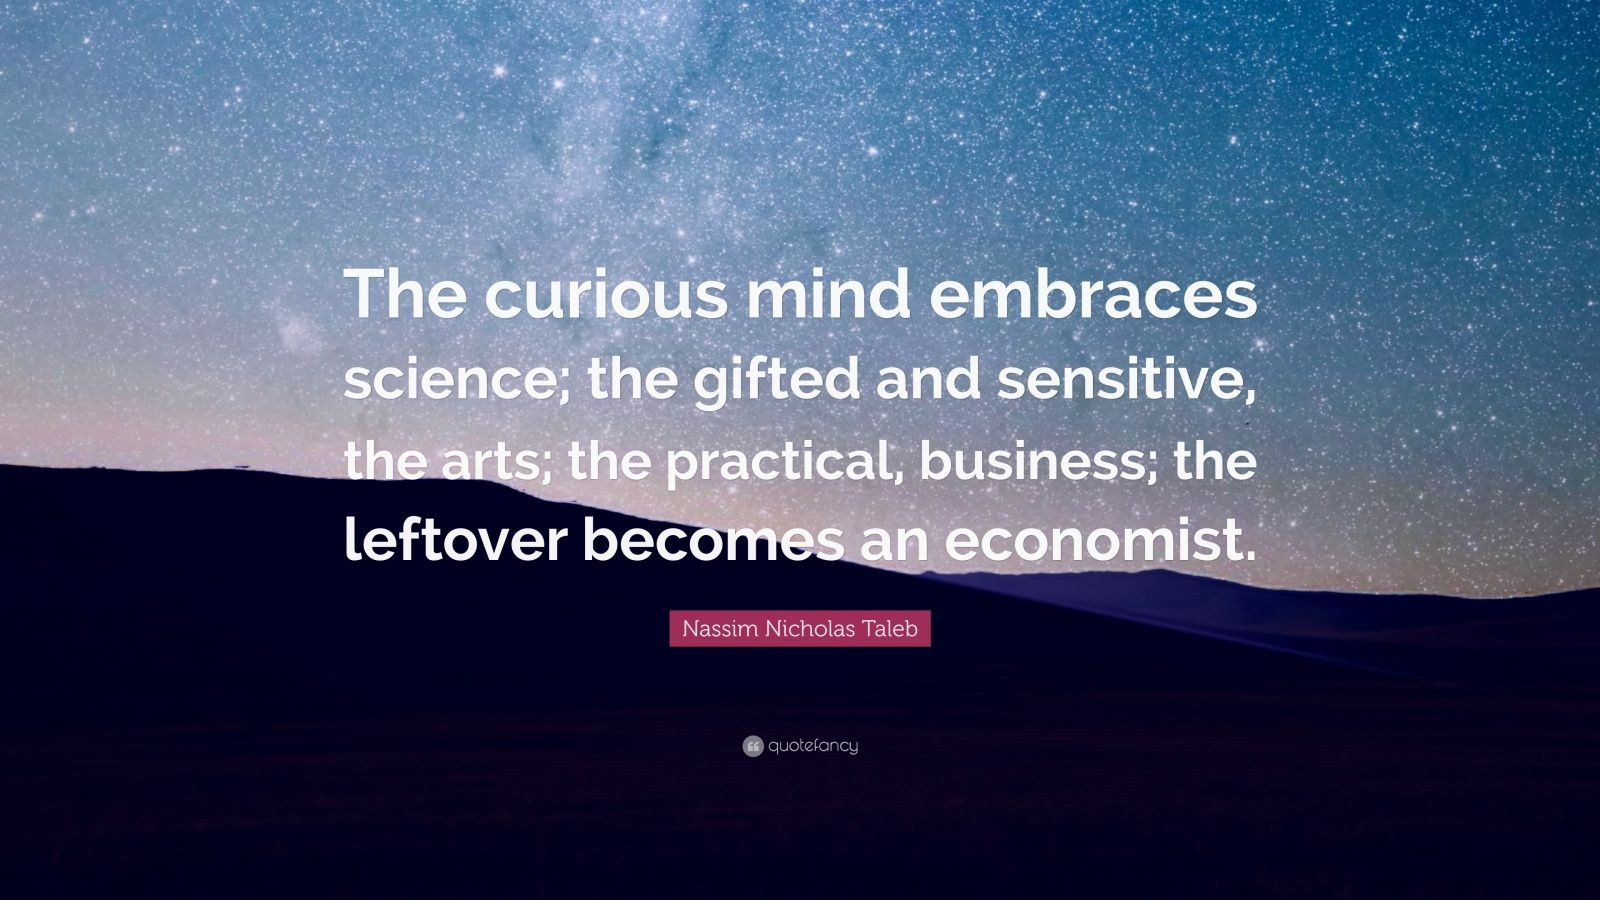 """Nassim Nicholas Taleb Quote: """"The curious mind embraces science; the gifted and sensitive, the arts; the practical, business; the leftover becomes an economist."""""""